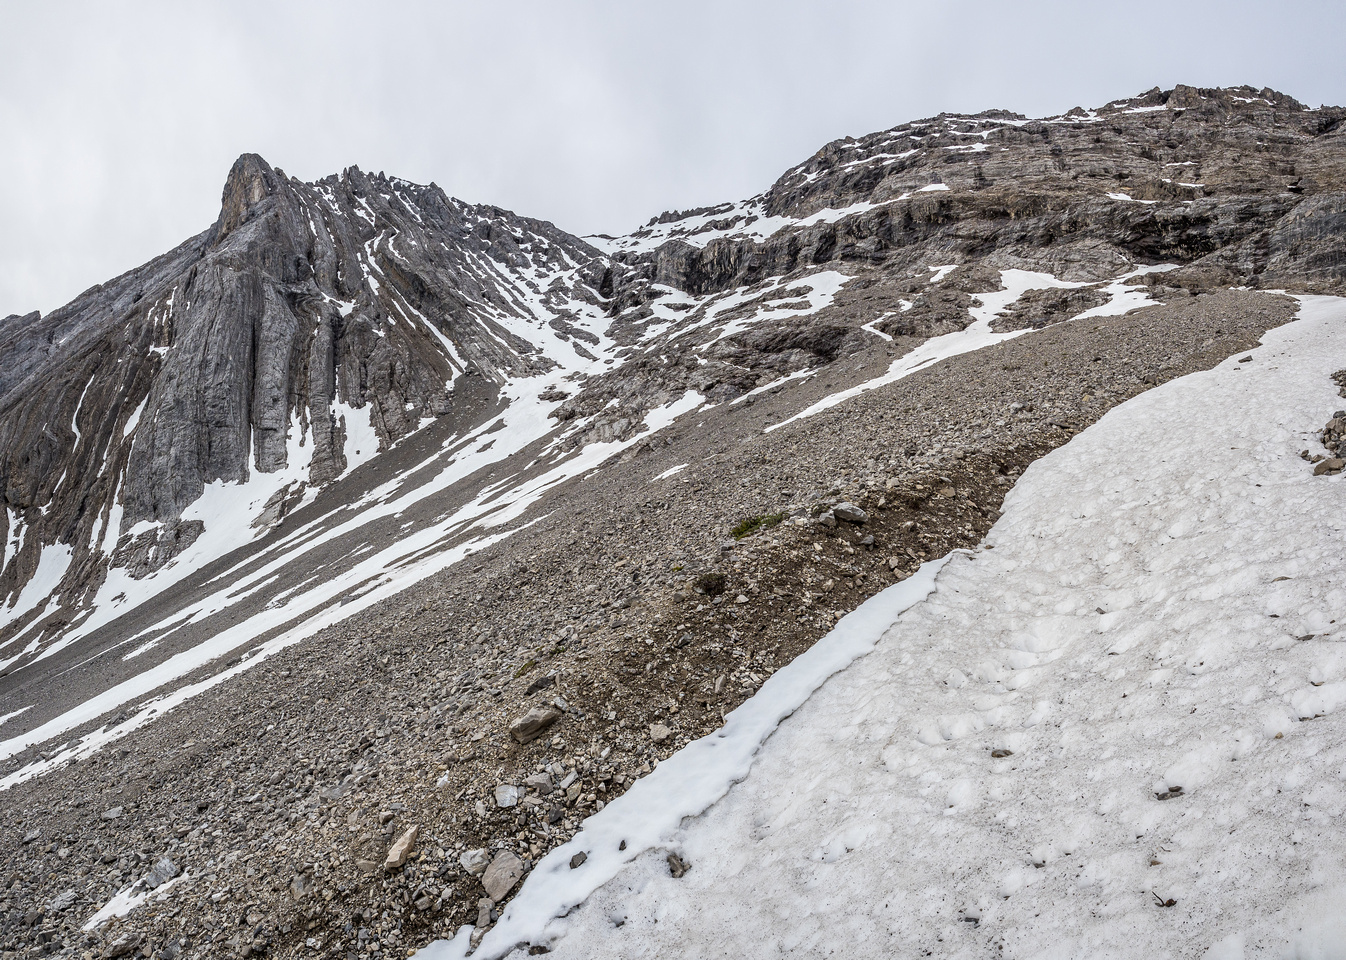 Gaining height rapidly on the lower snow / avalanche slope. Look at all that nasty scree I'm avoiding!